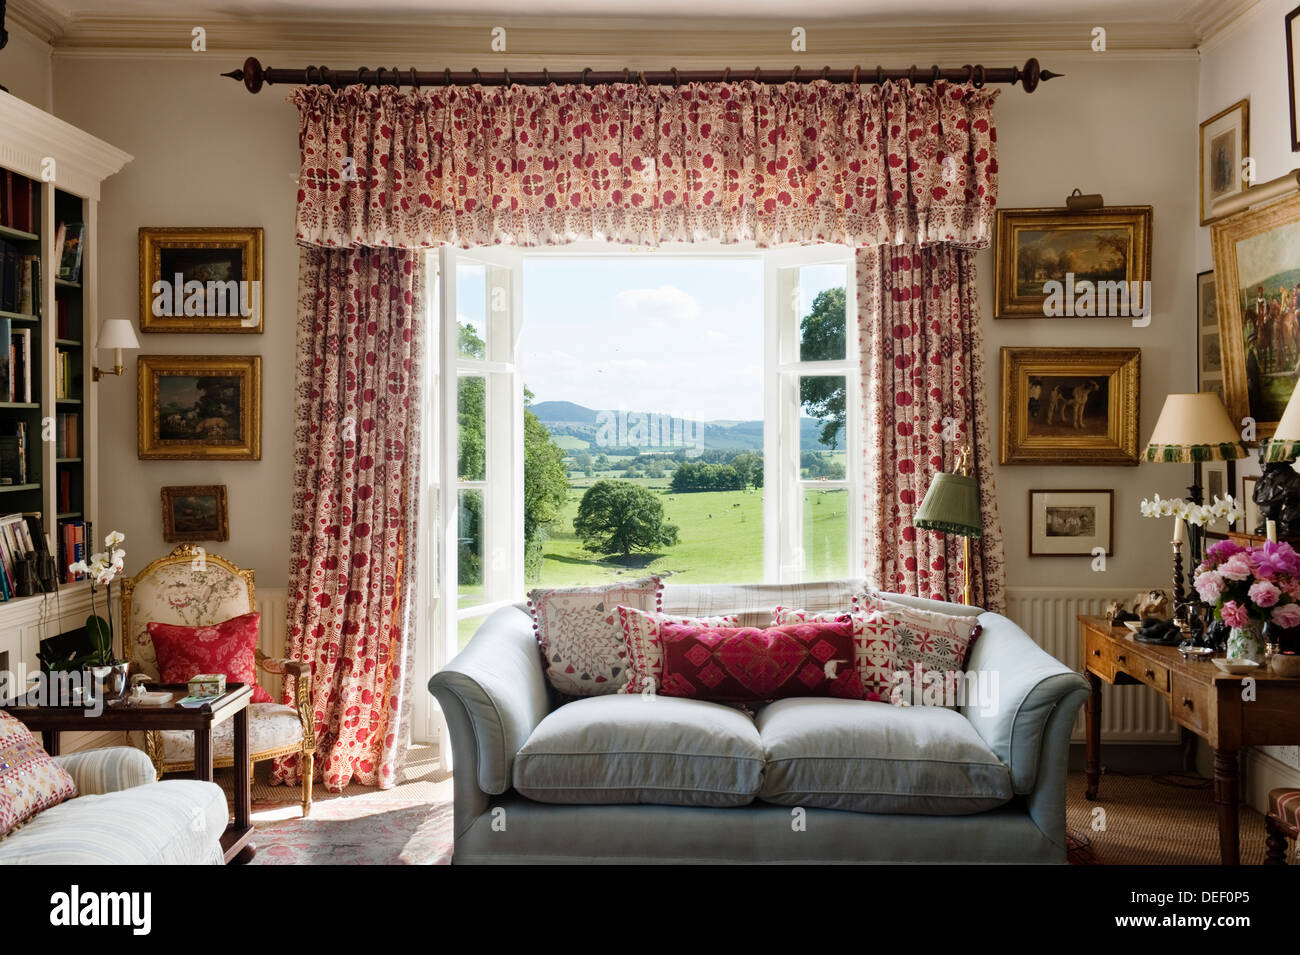 Gentil Country Estate Living Room With Red Patterned Curtains